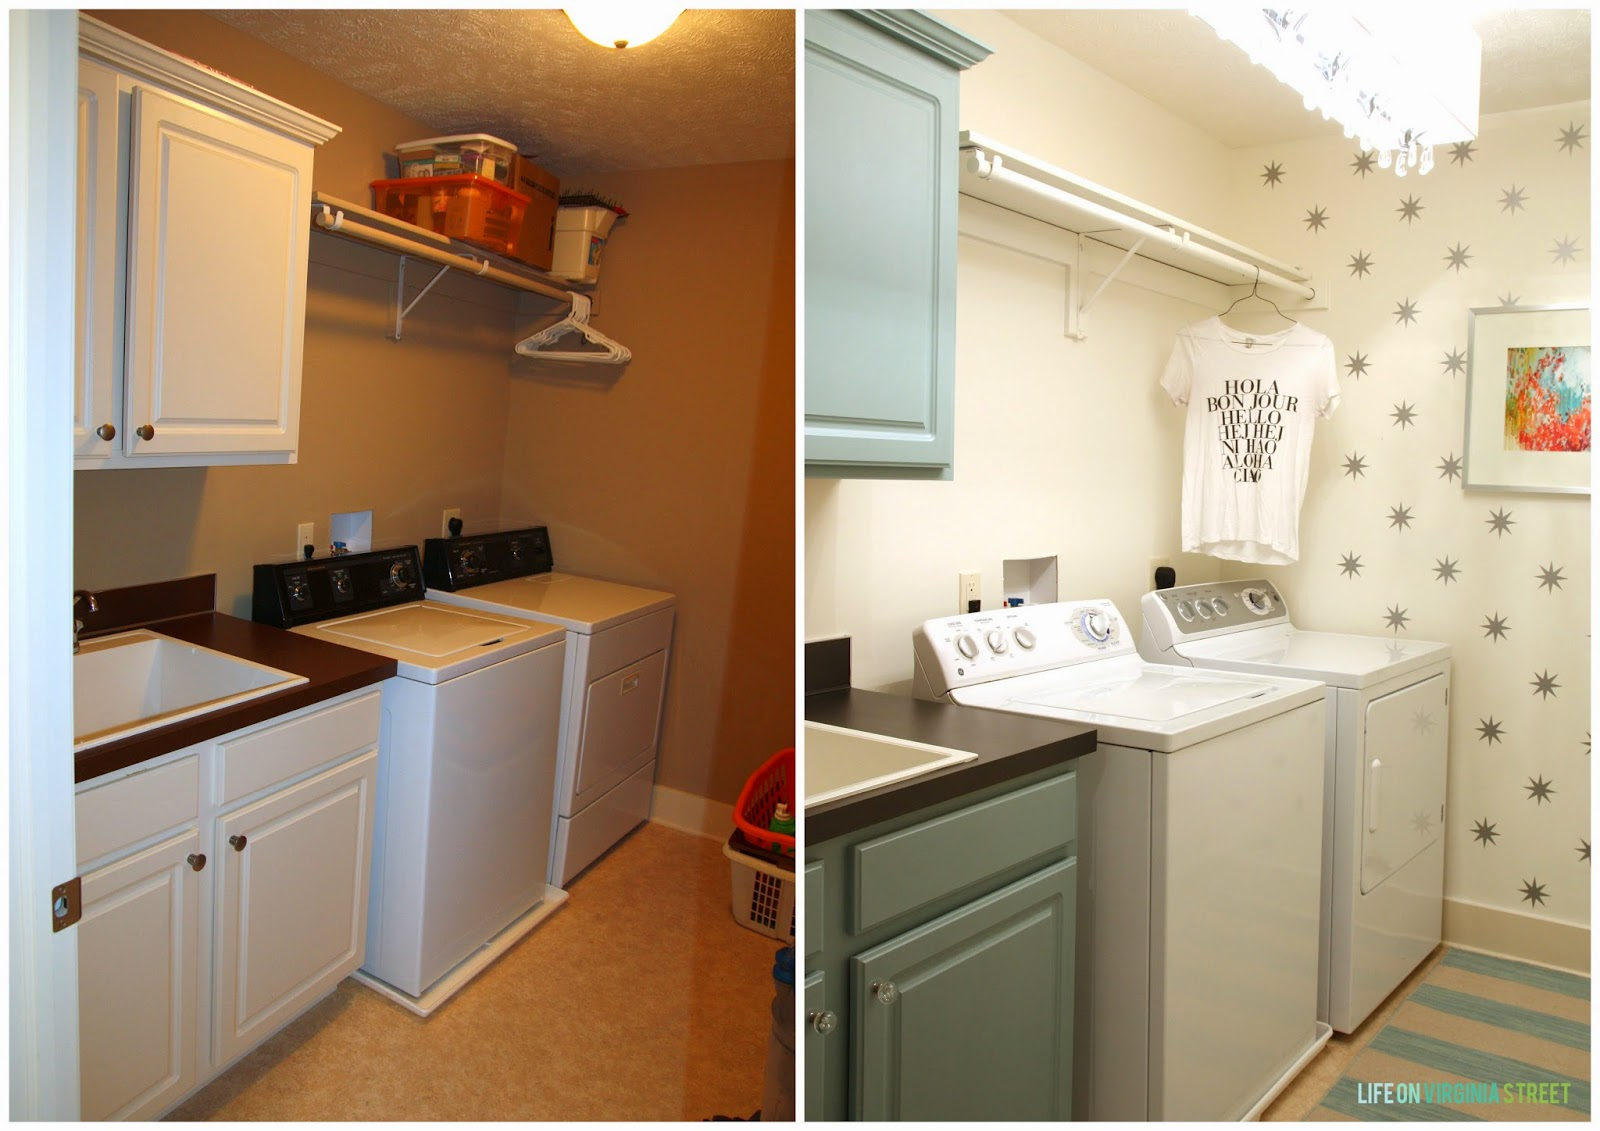 10 beautiful room makeovers life on virginia street for Laundry room redo blog